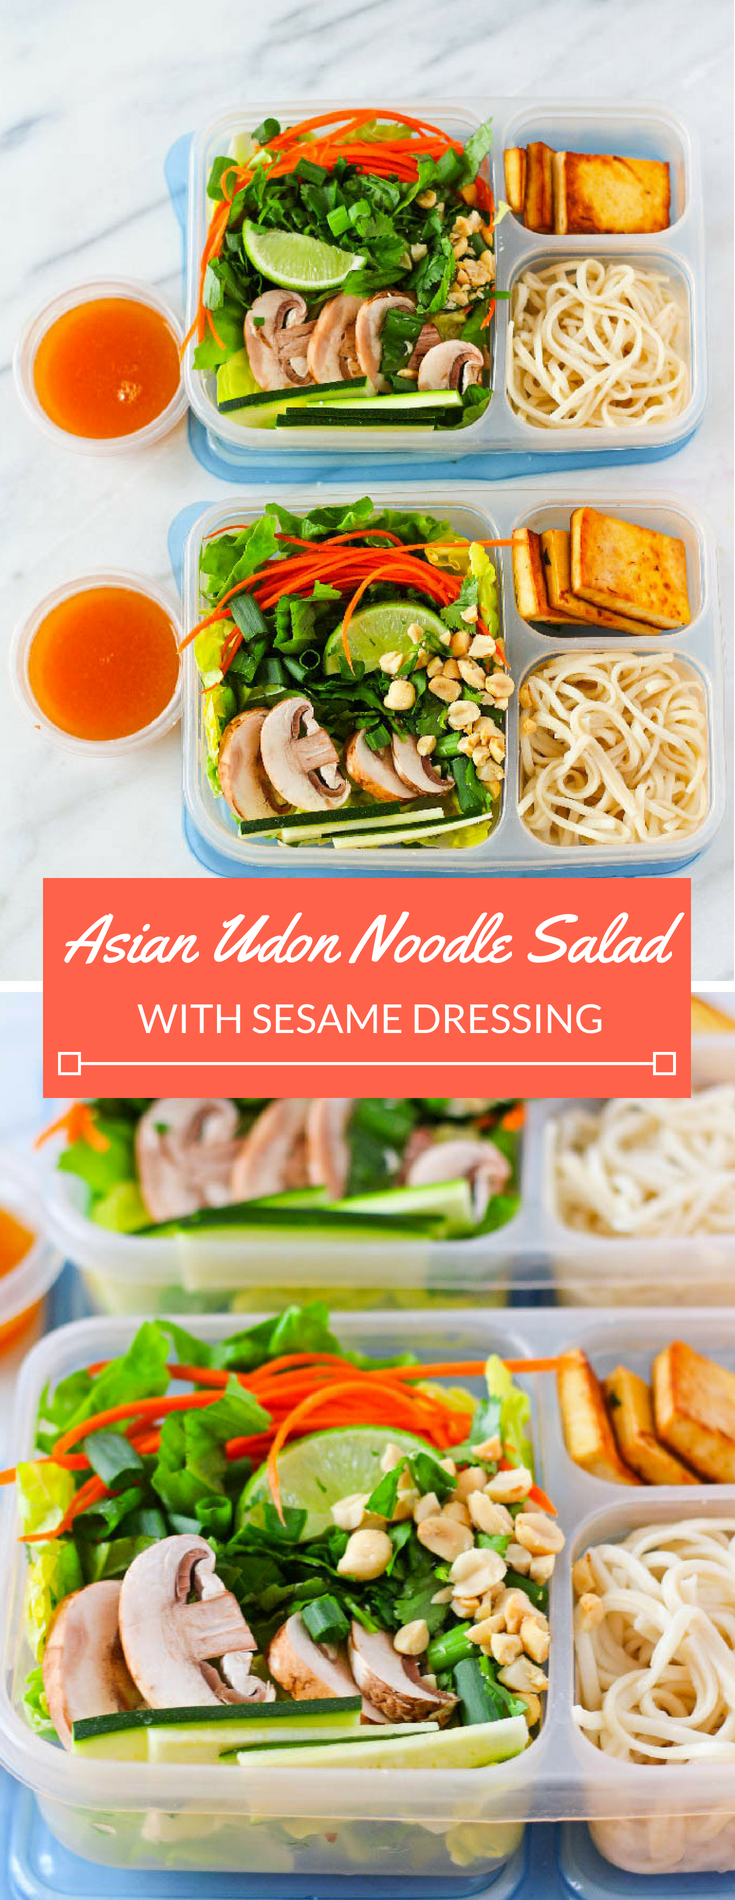 Asian Udon Noodle Salad with Pan Seared Tofu & Toasted Sesame Dressing